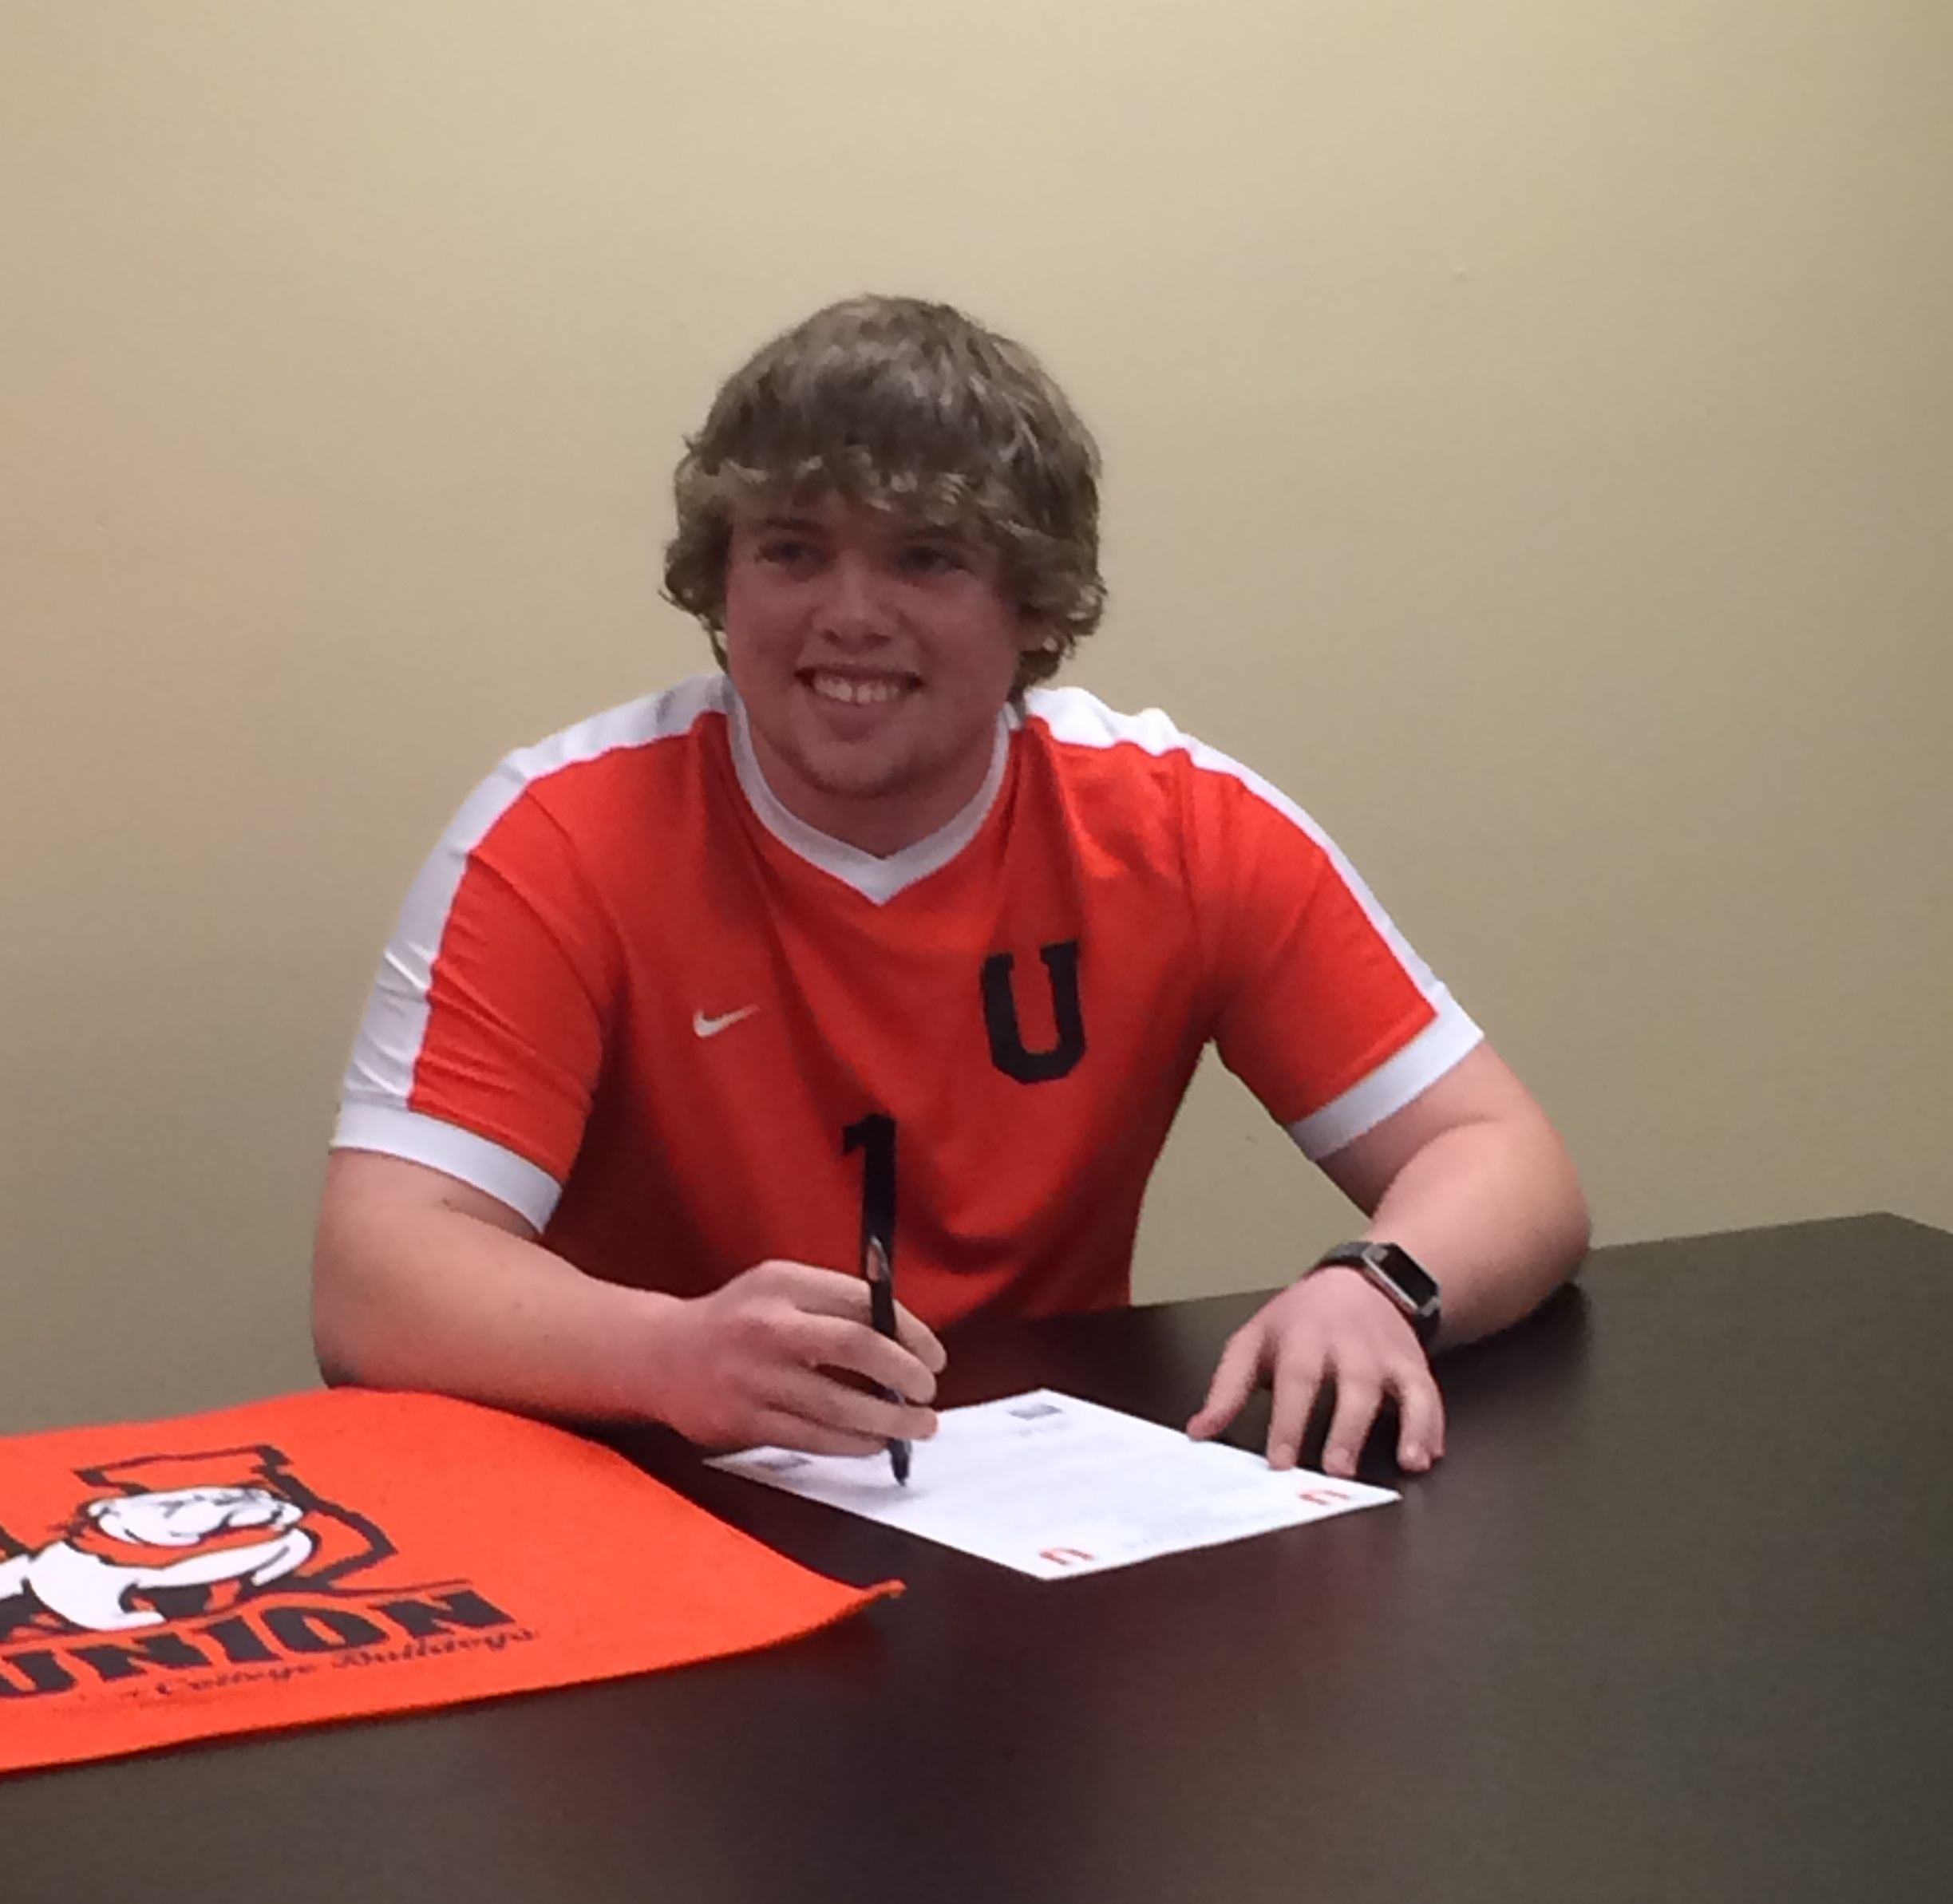 CCHS senior Holden Shepard will continue to be a Bulldog after graduation.  On National Signing Day, Shepard signed his letter of intent to play soccer at Union College.